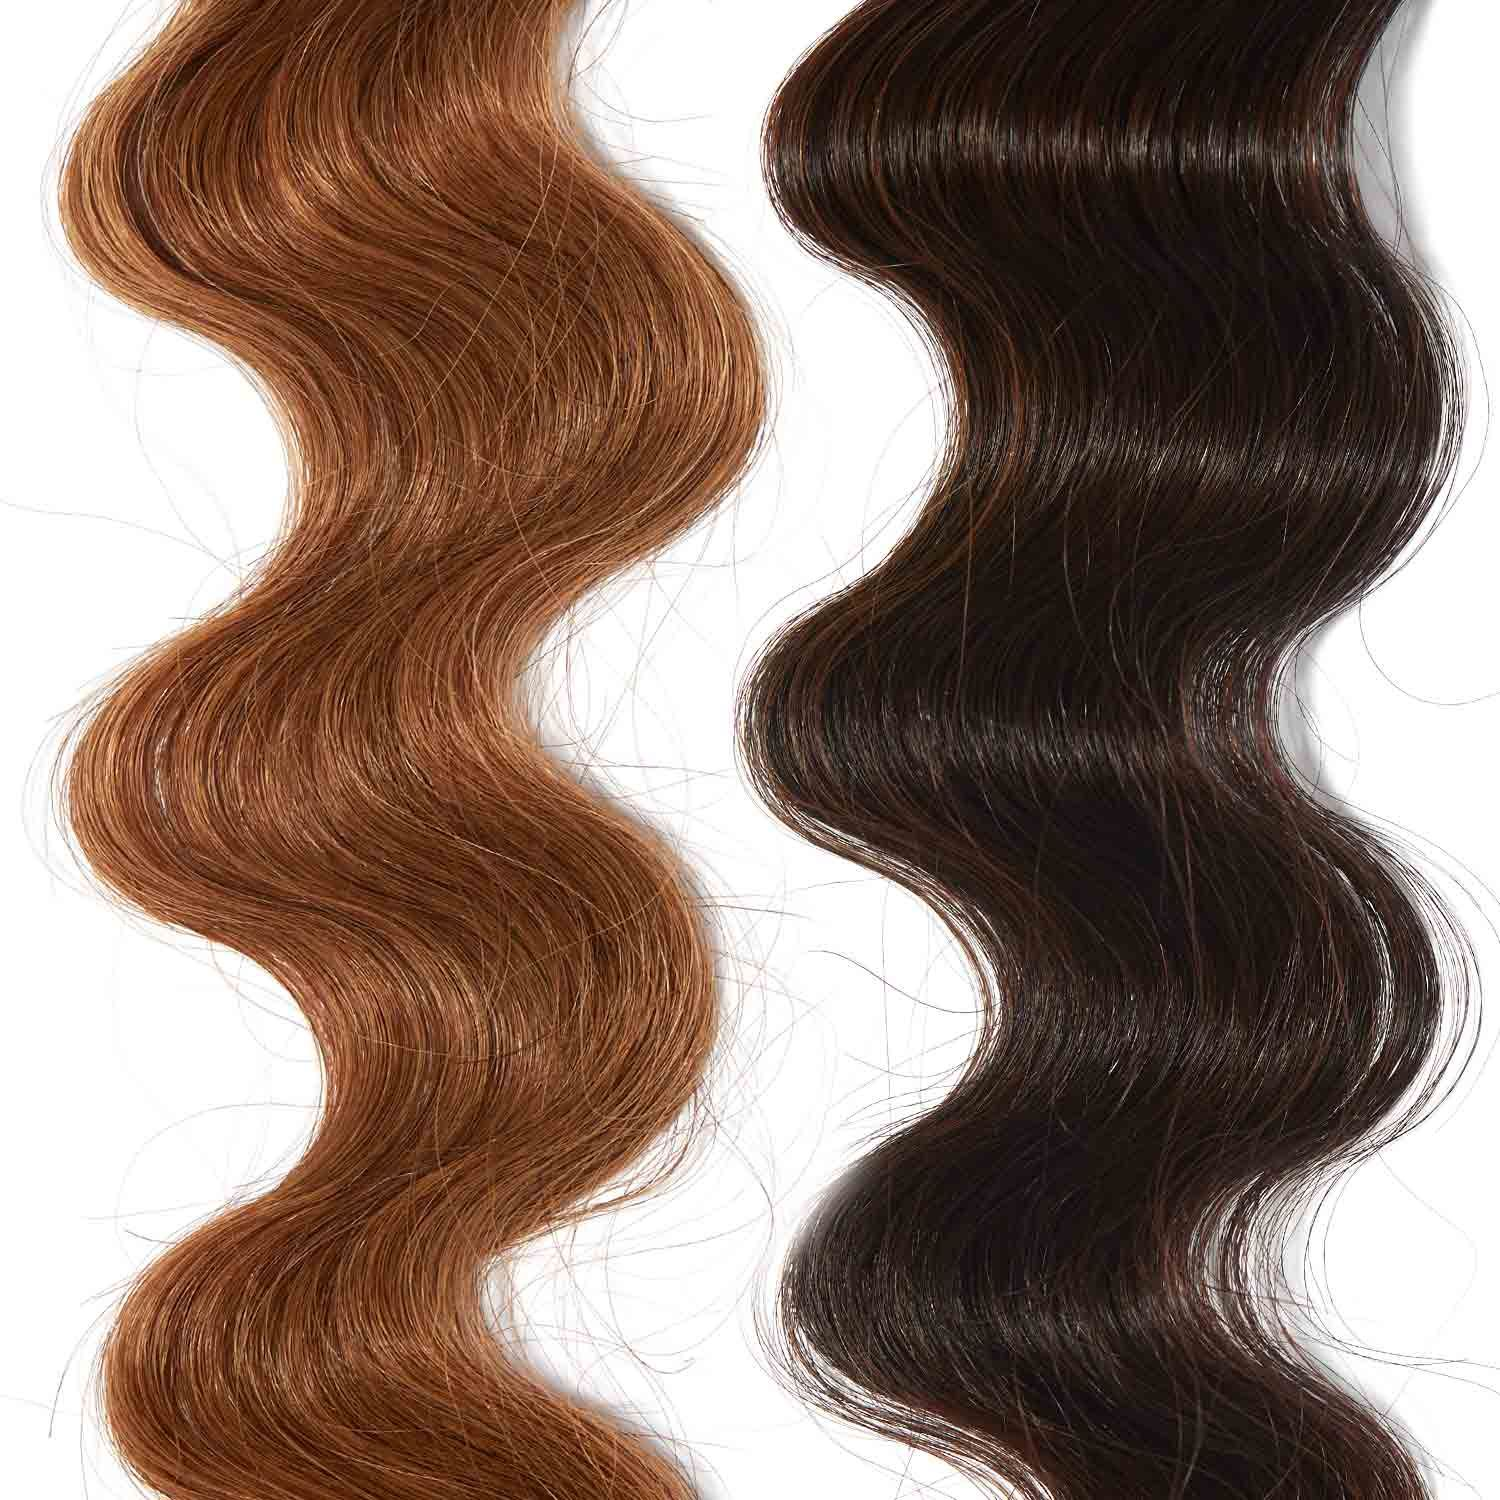 Espresso Brown Complete System Overtone Haircare In 2020 Golden Brown Hair Color Brown Hair Shades Healthy Colors